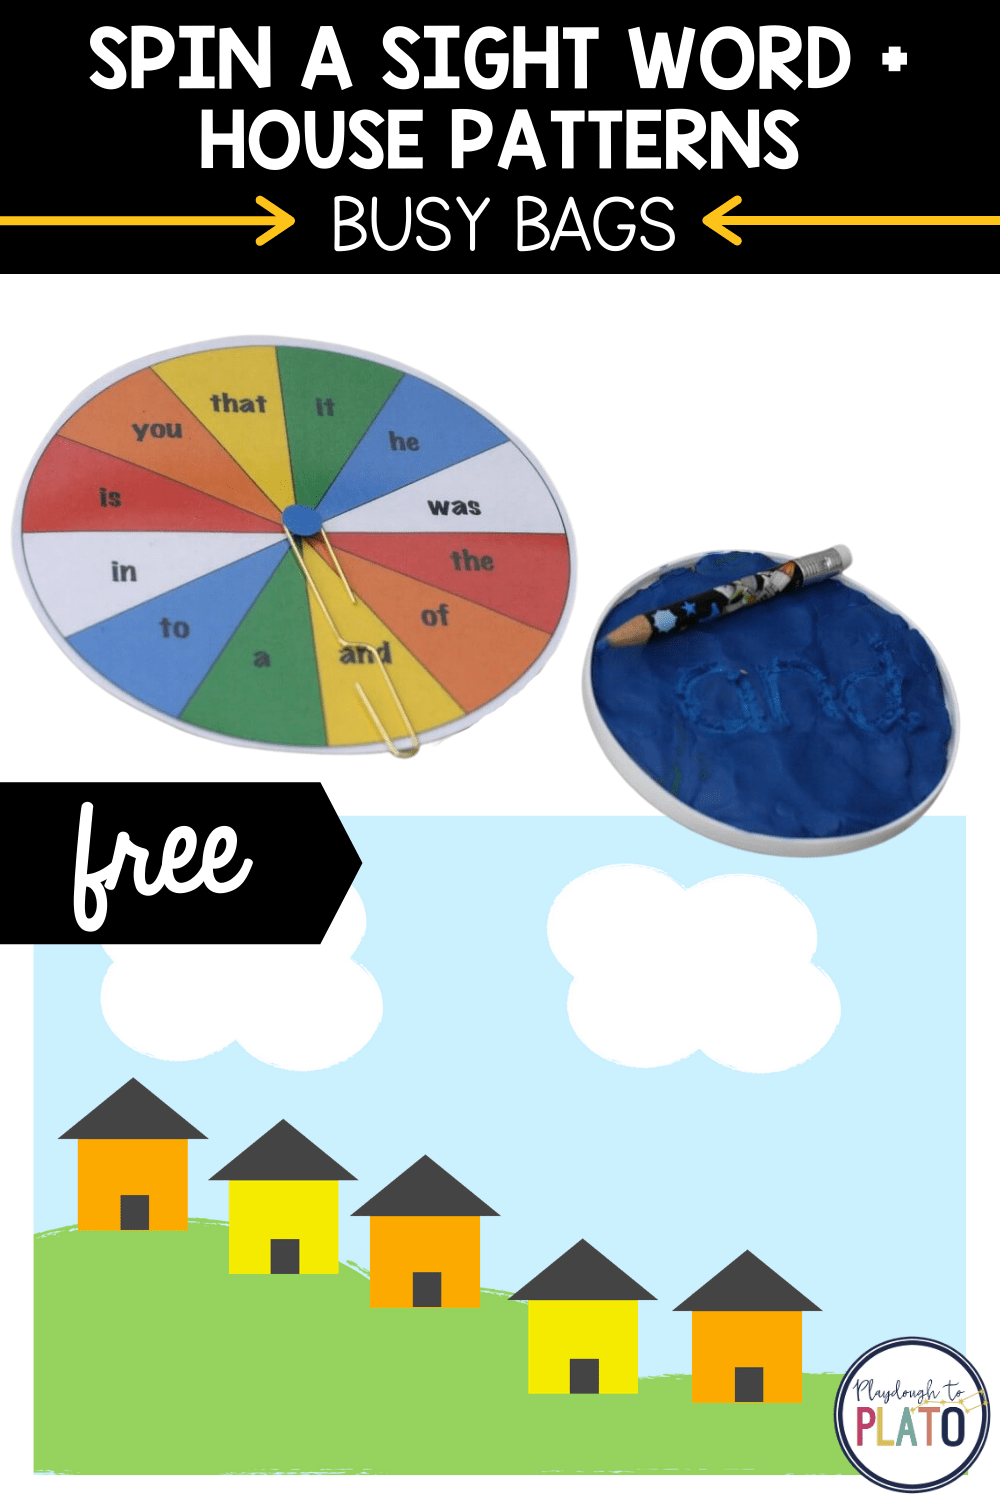 Spin a Sight Word and House Patterns Activites